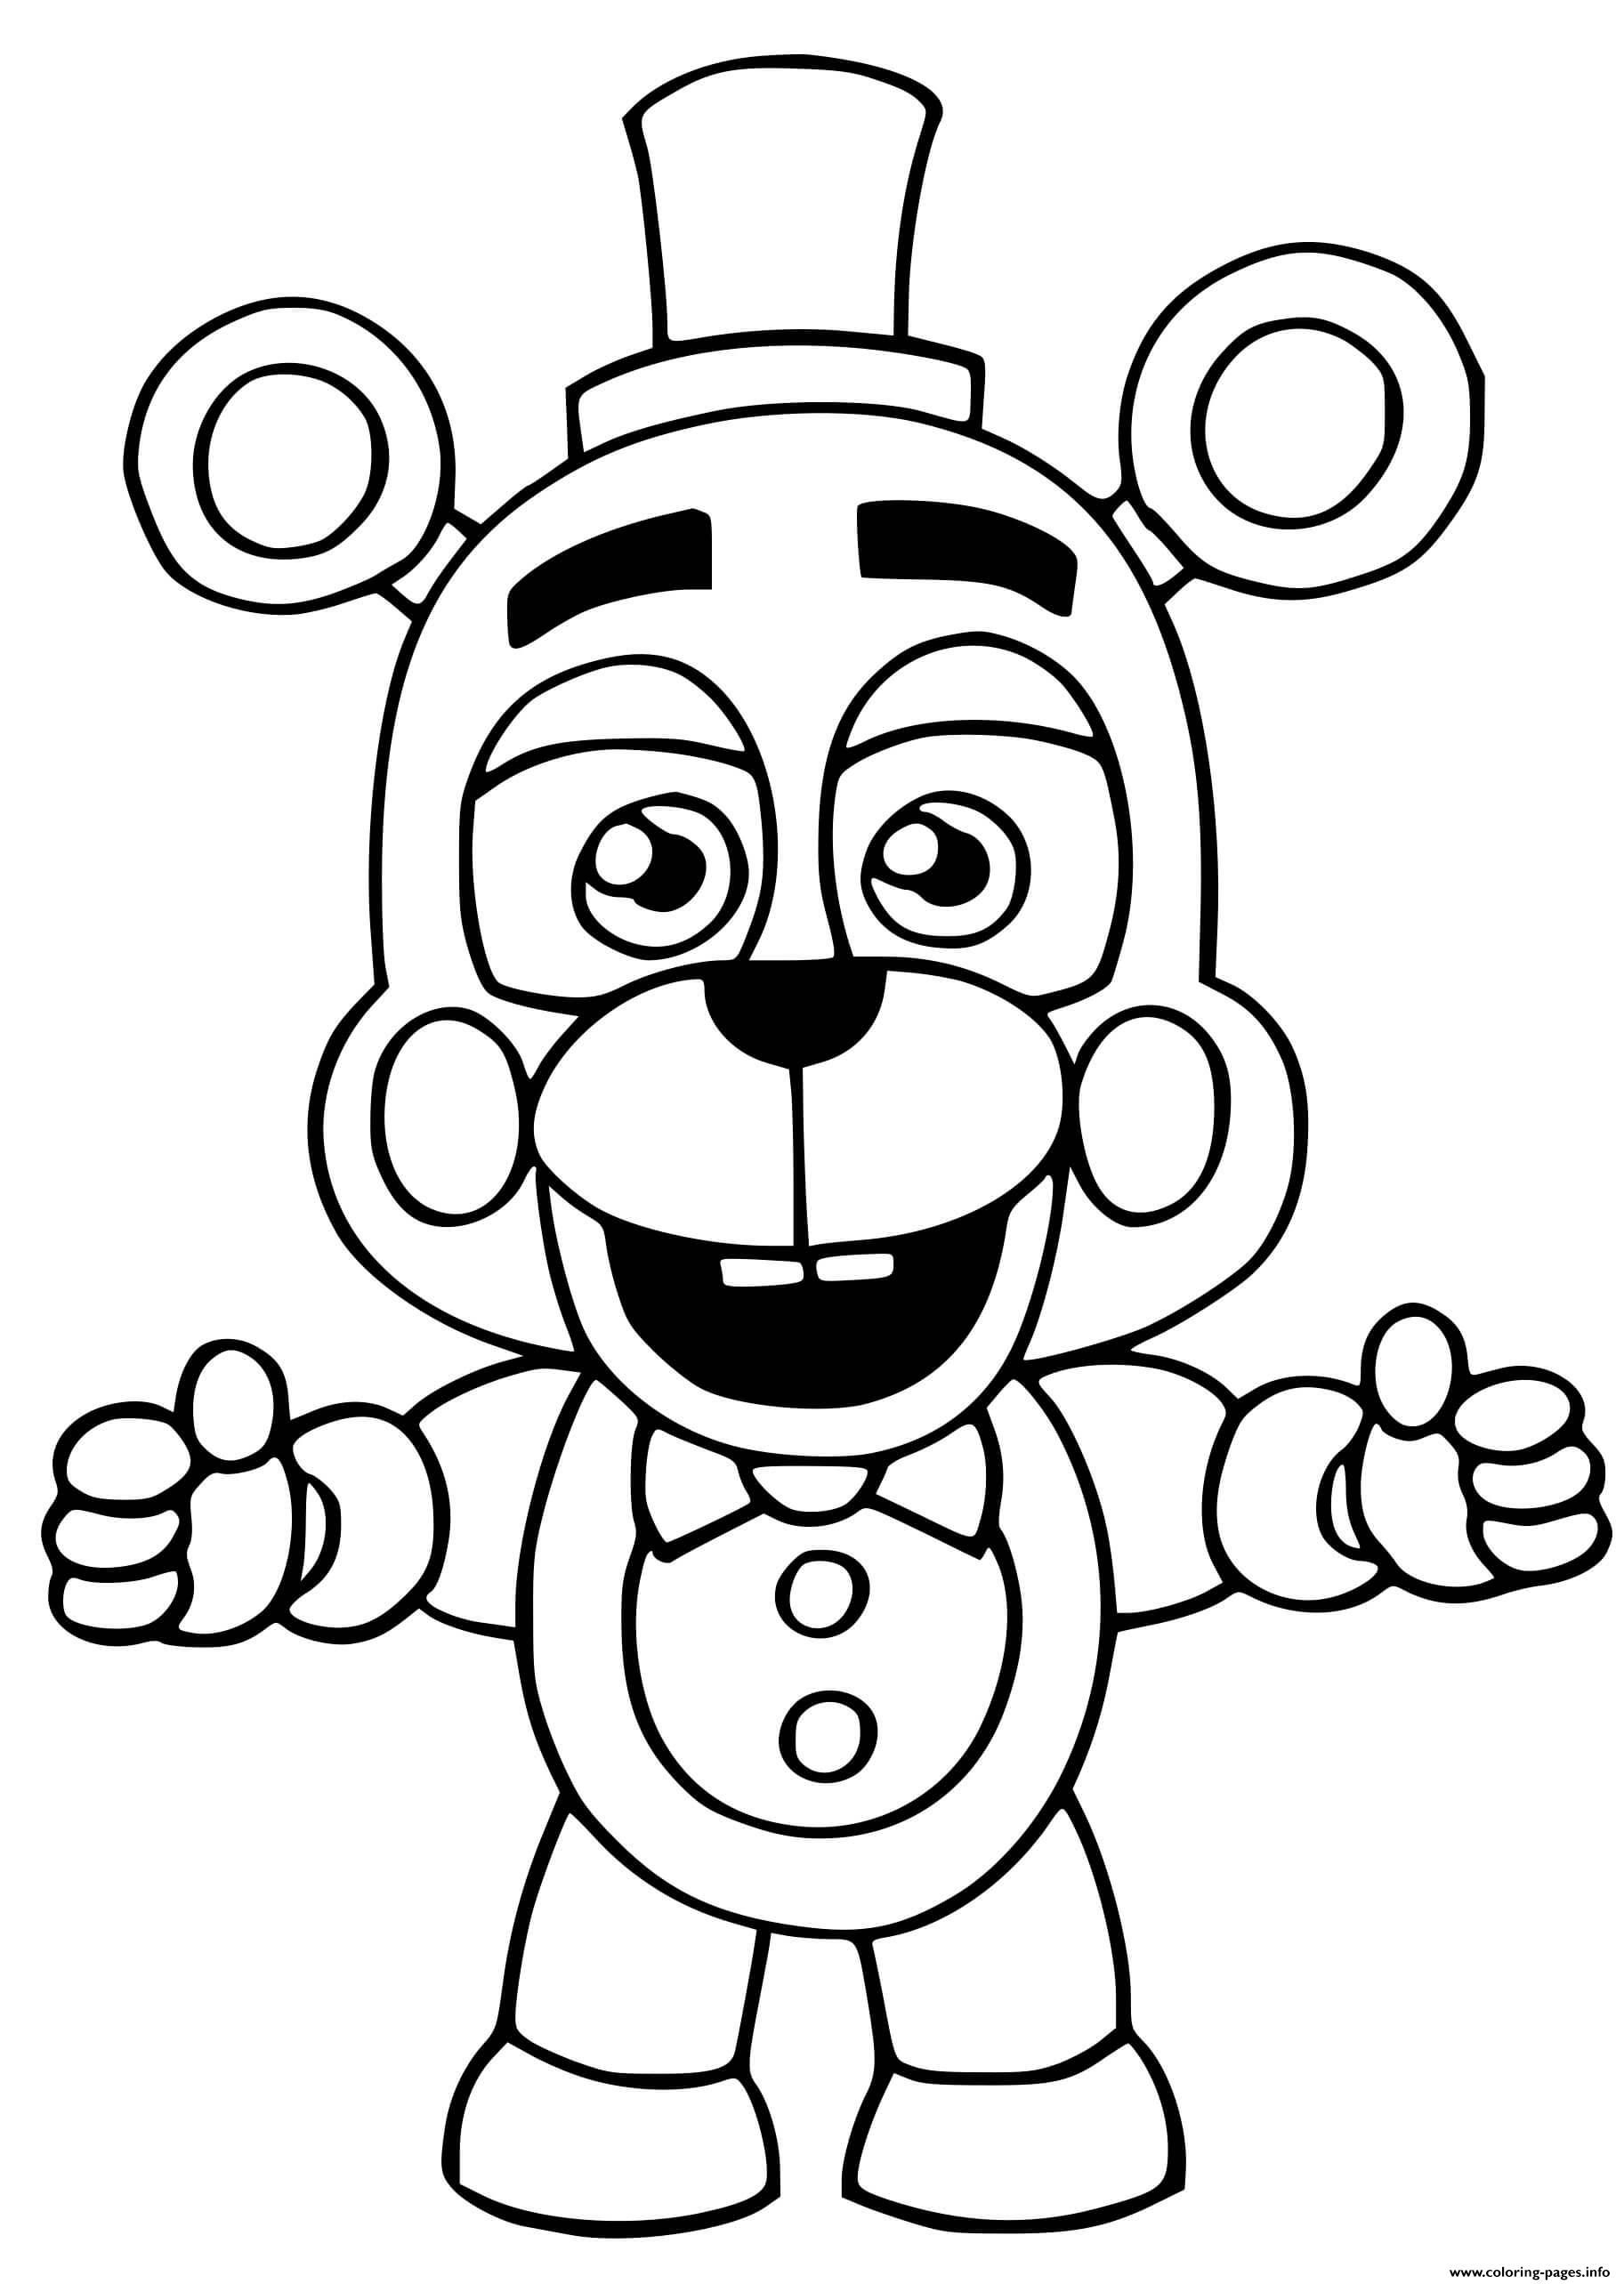 Print Helpy Coloring Pages In 2021 Coloring Pages Mario Coloring Pages Fnaf Coloring Pages